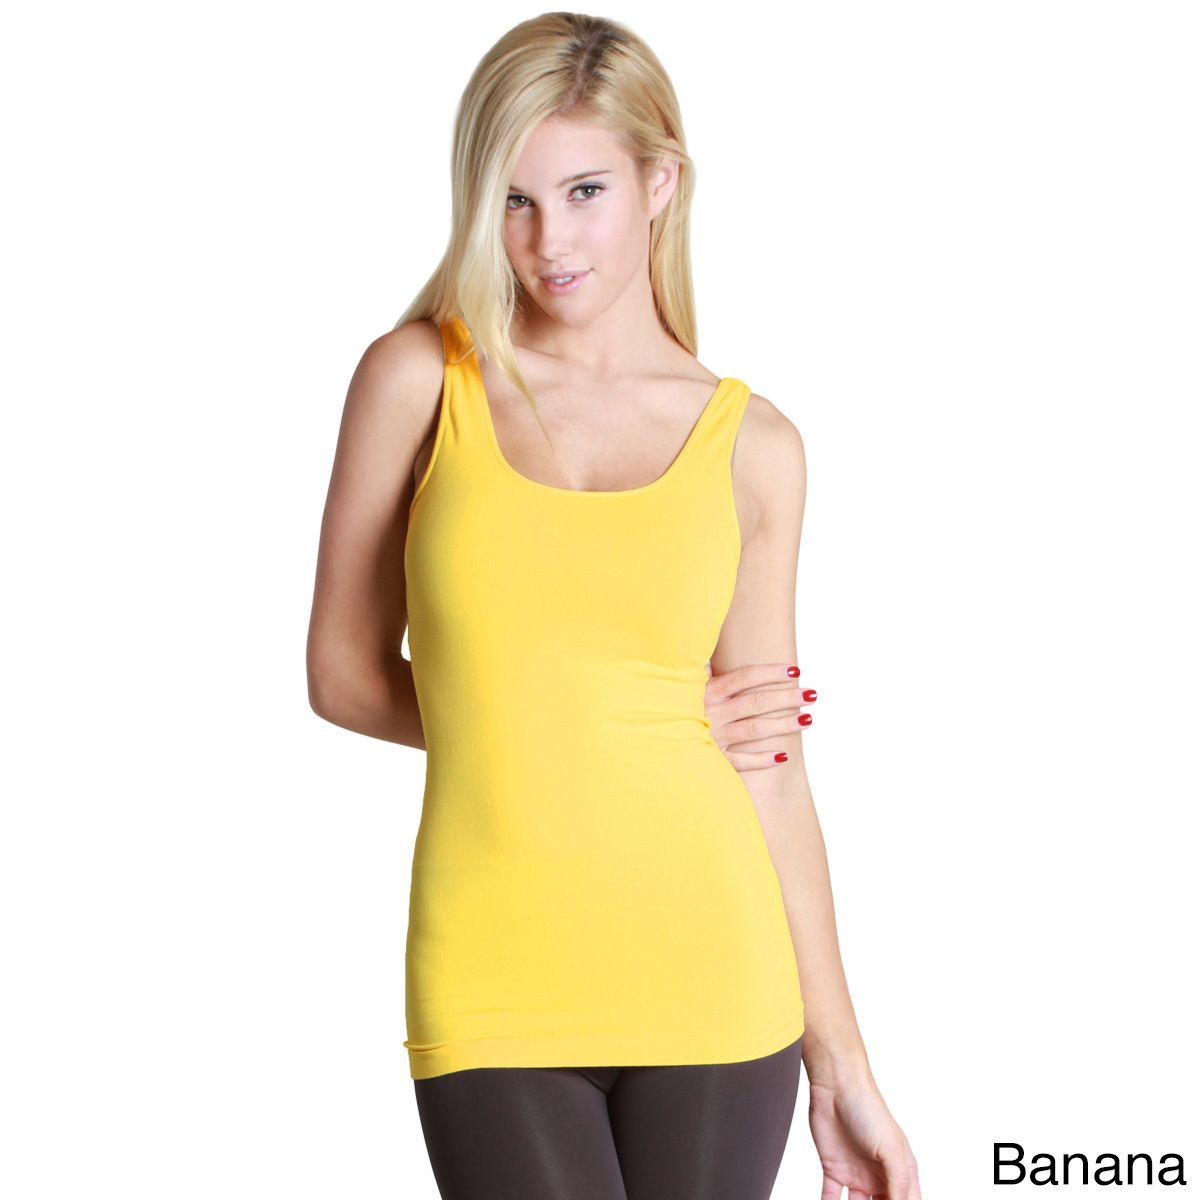 970b7b7873f01 Nikibiki Women s Seamless Assorted Pink or Yellow Jersey Tank Top (Banana -  One ...